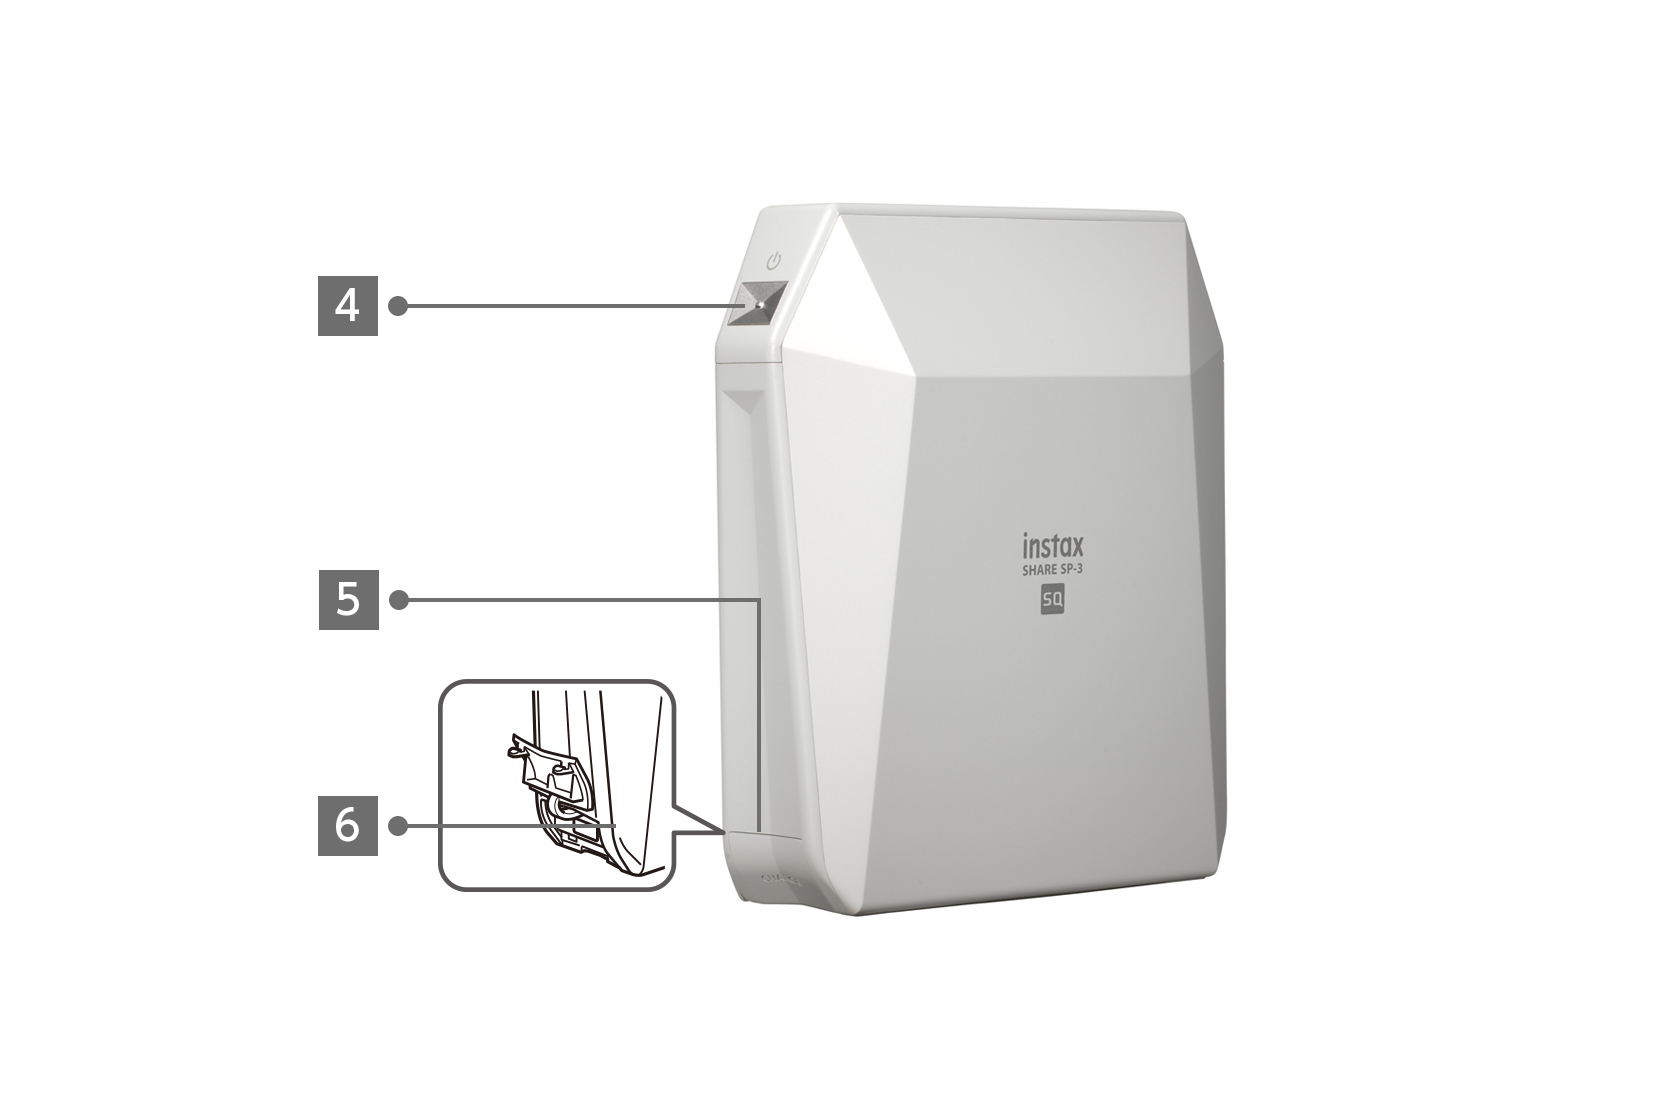 Side view of white INSTAX SHARE™ SP-3 printer